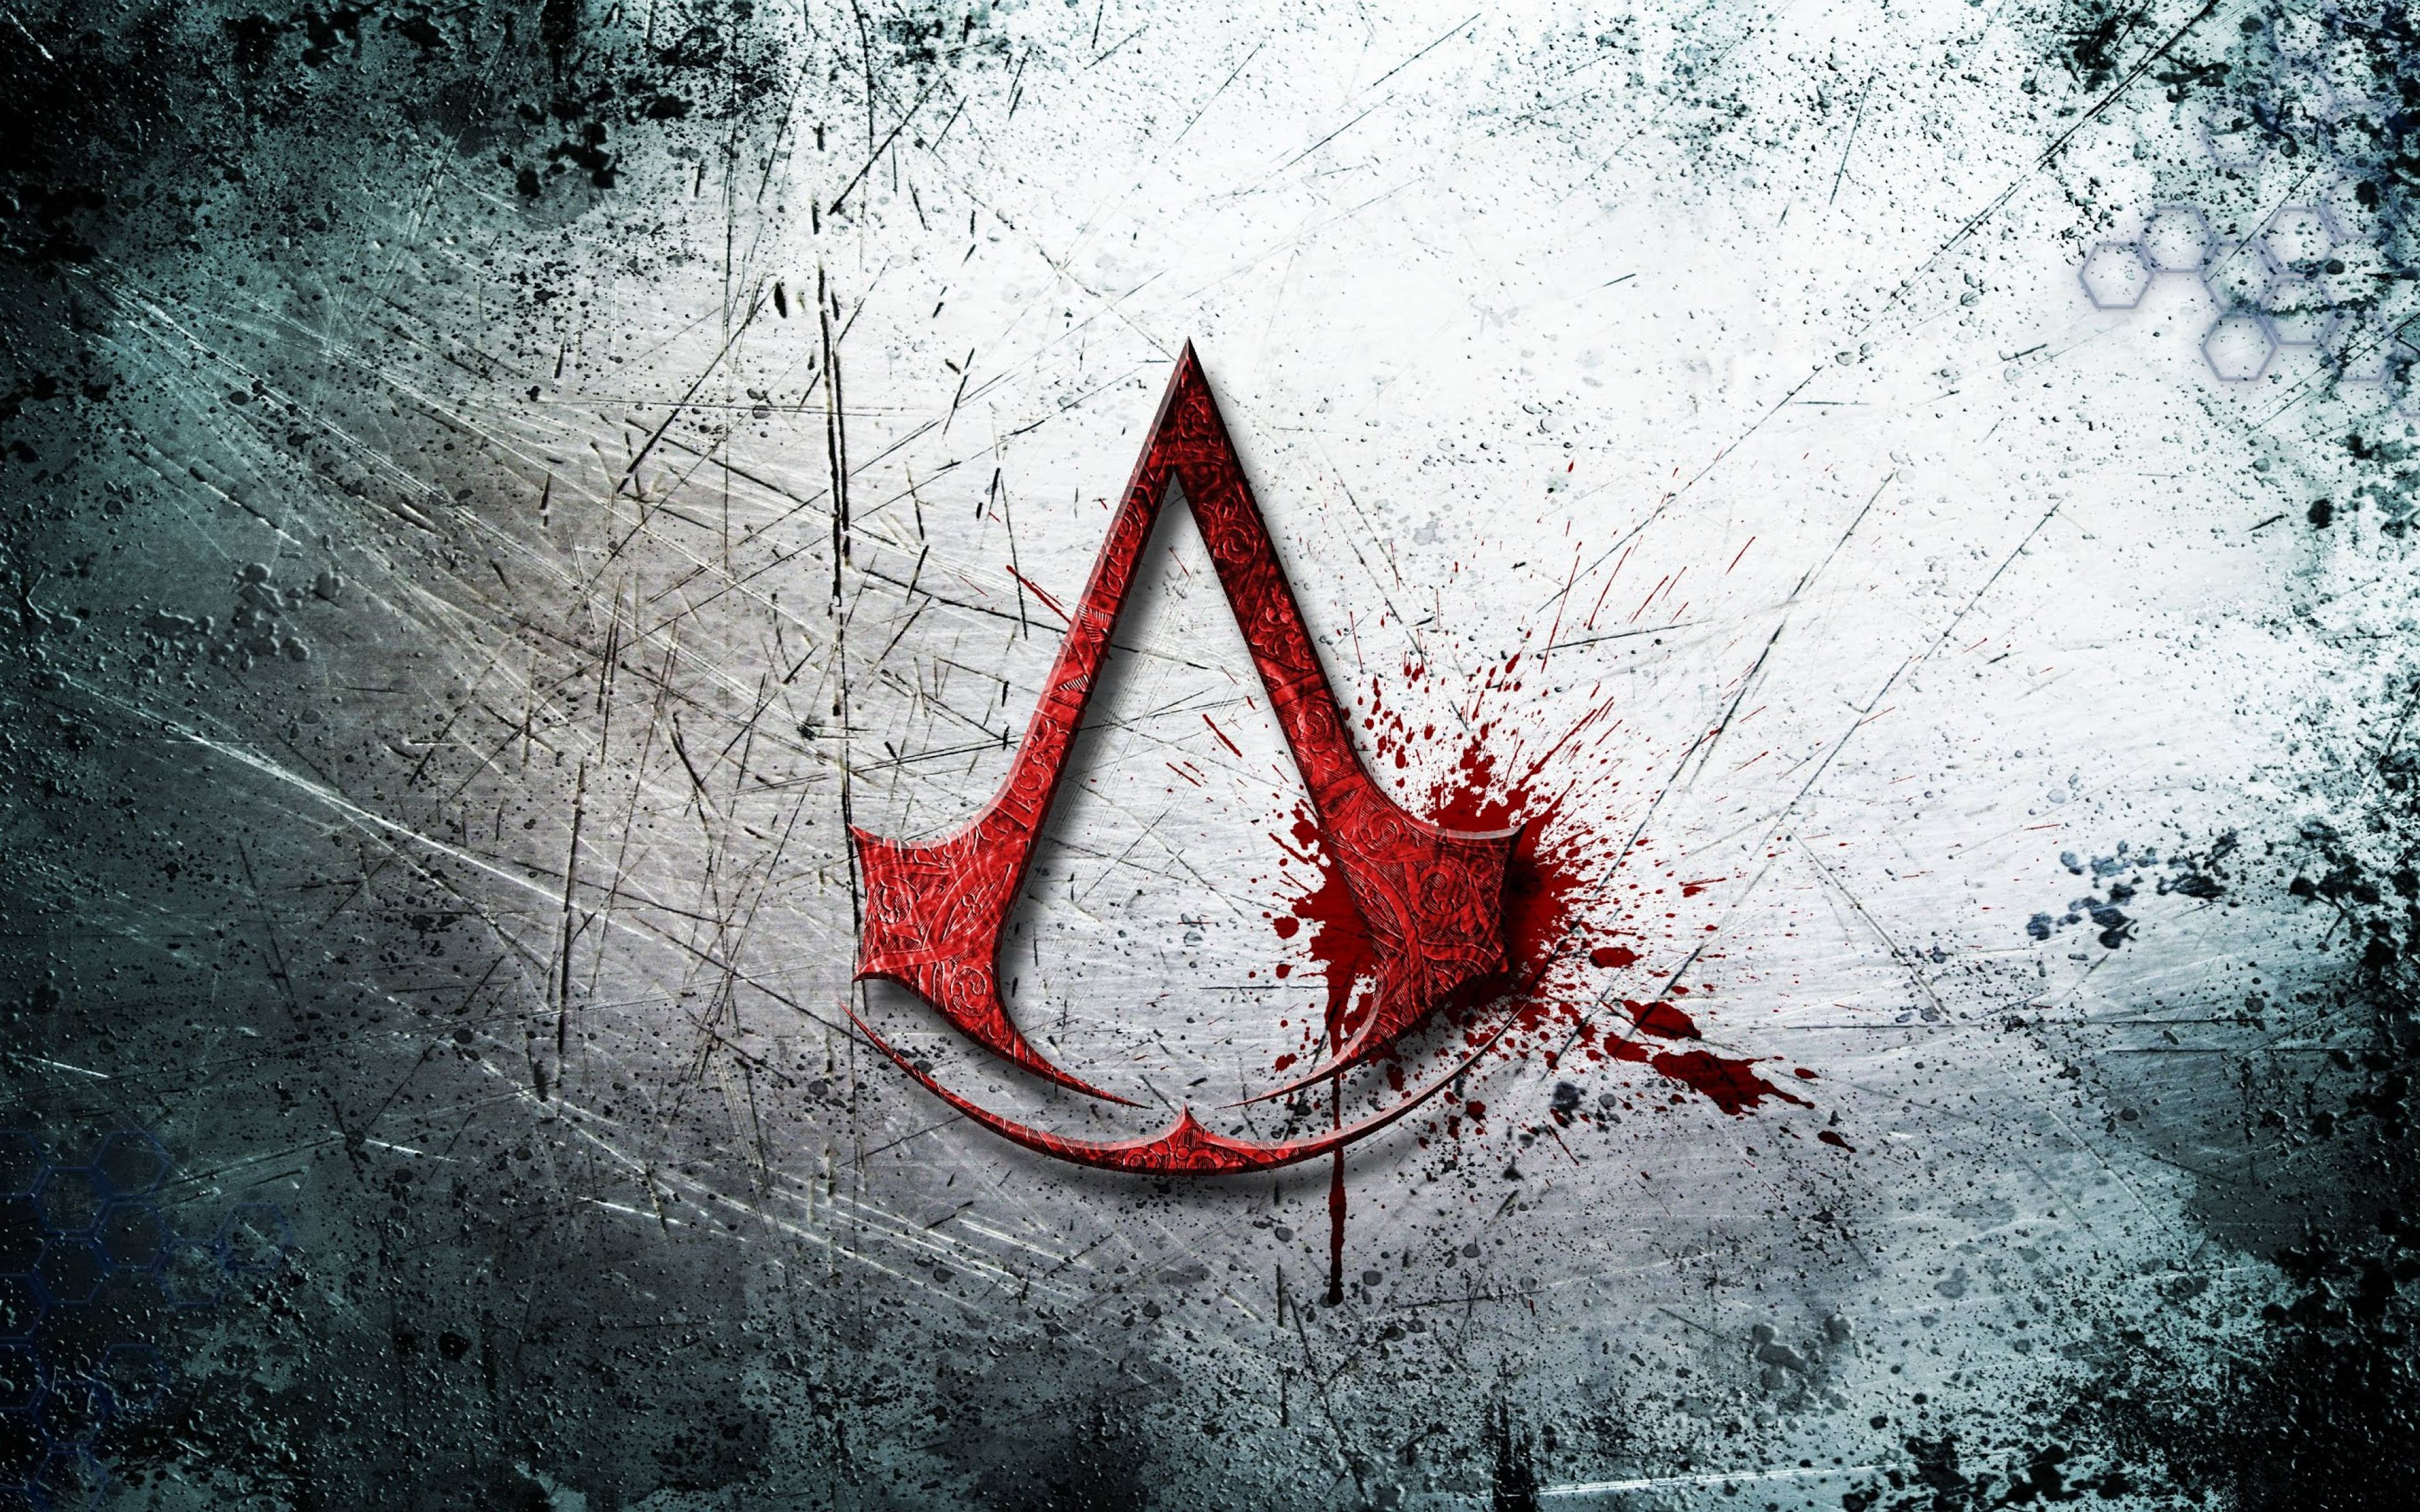 https://wallpaperscraft.com/image/assassins_creed_...